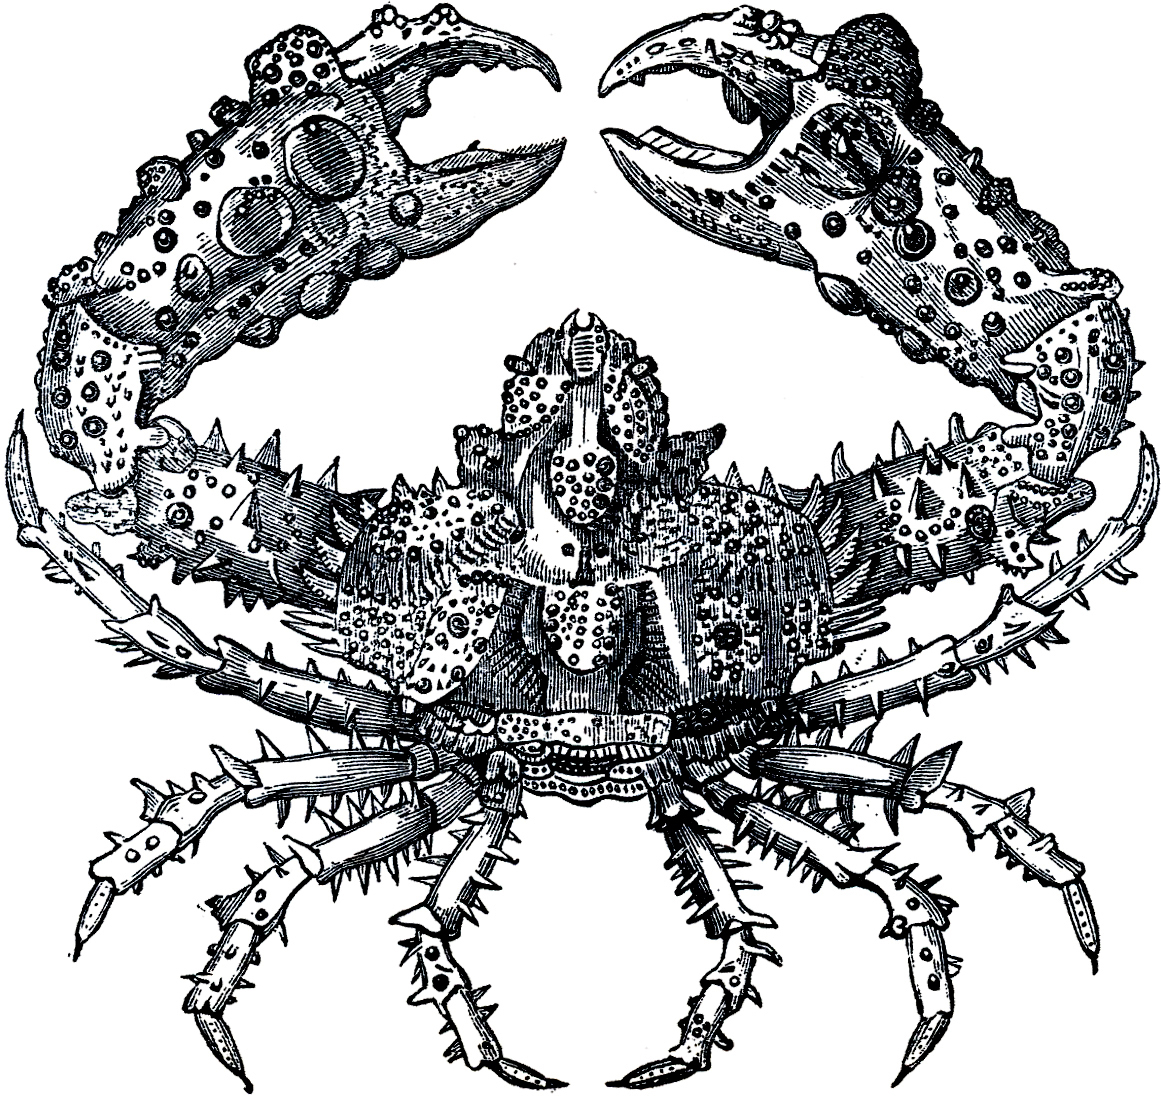 Free Crusty Crab Image - The Graphics Fairy